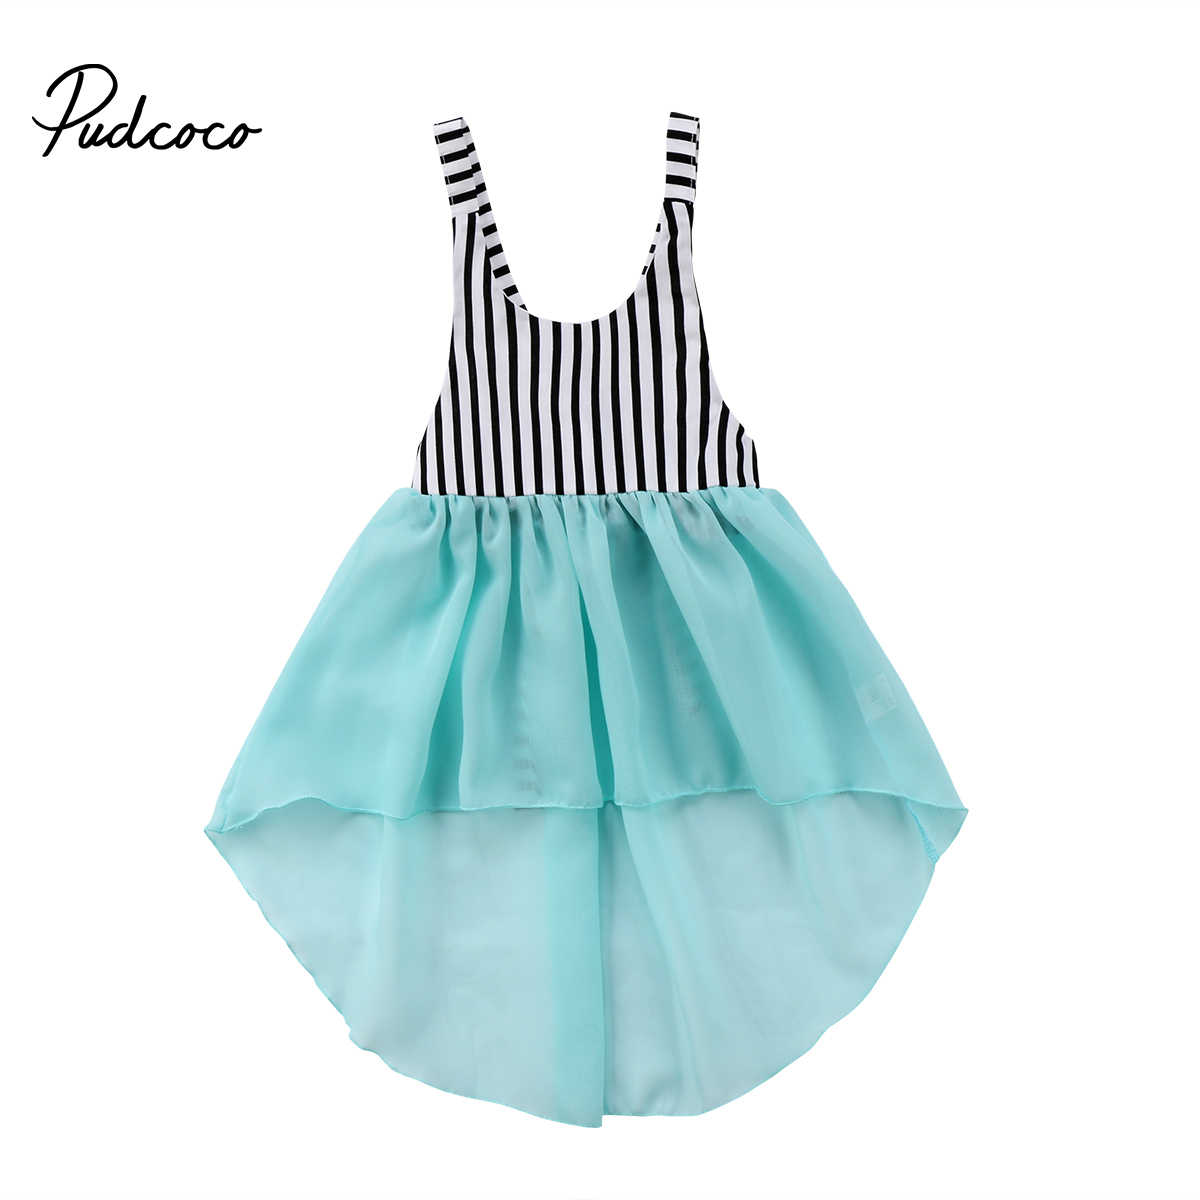 b1785acfff 2018 Brand New Toddler Infant Kids Girls Tail Dress Sleeveless Summer  Sundress Striped Chiffon Patchwork Princess